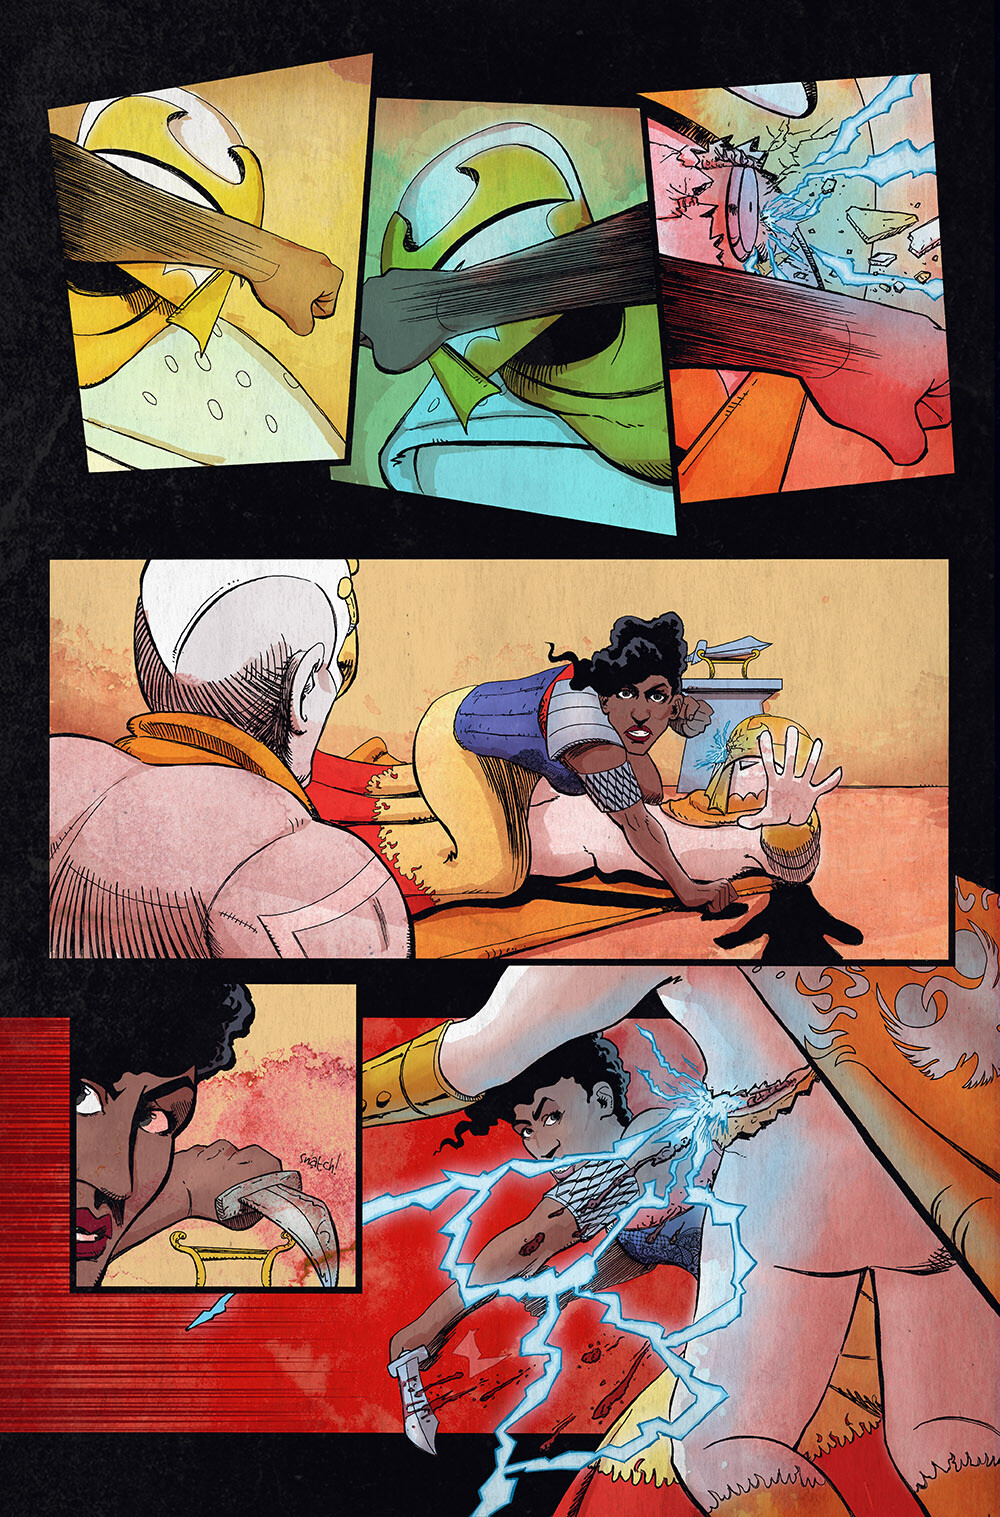 Vagrant Queen: A Planet Called Doom #3 pg 06